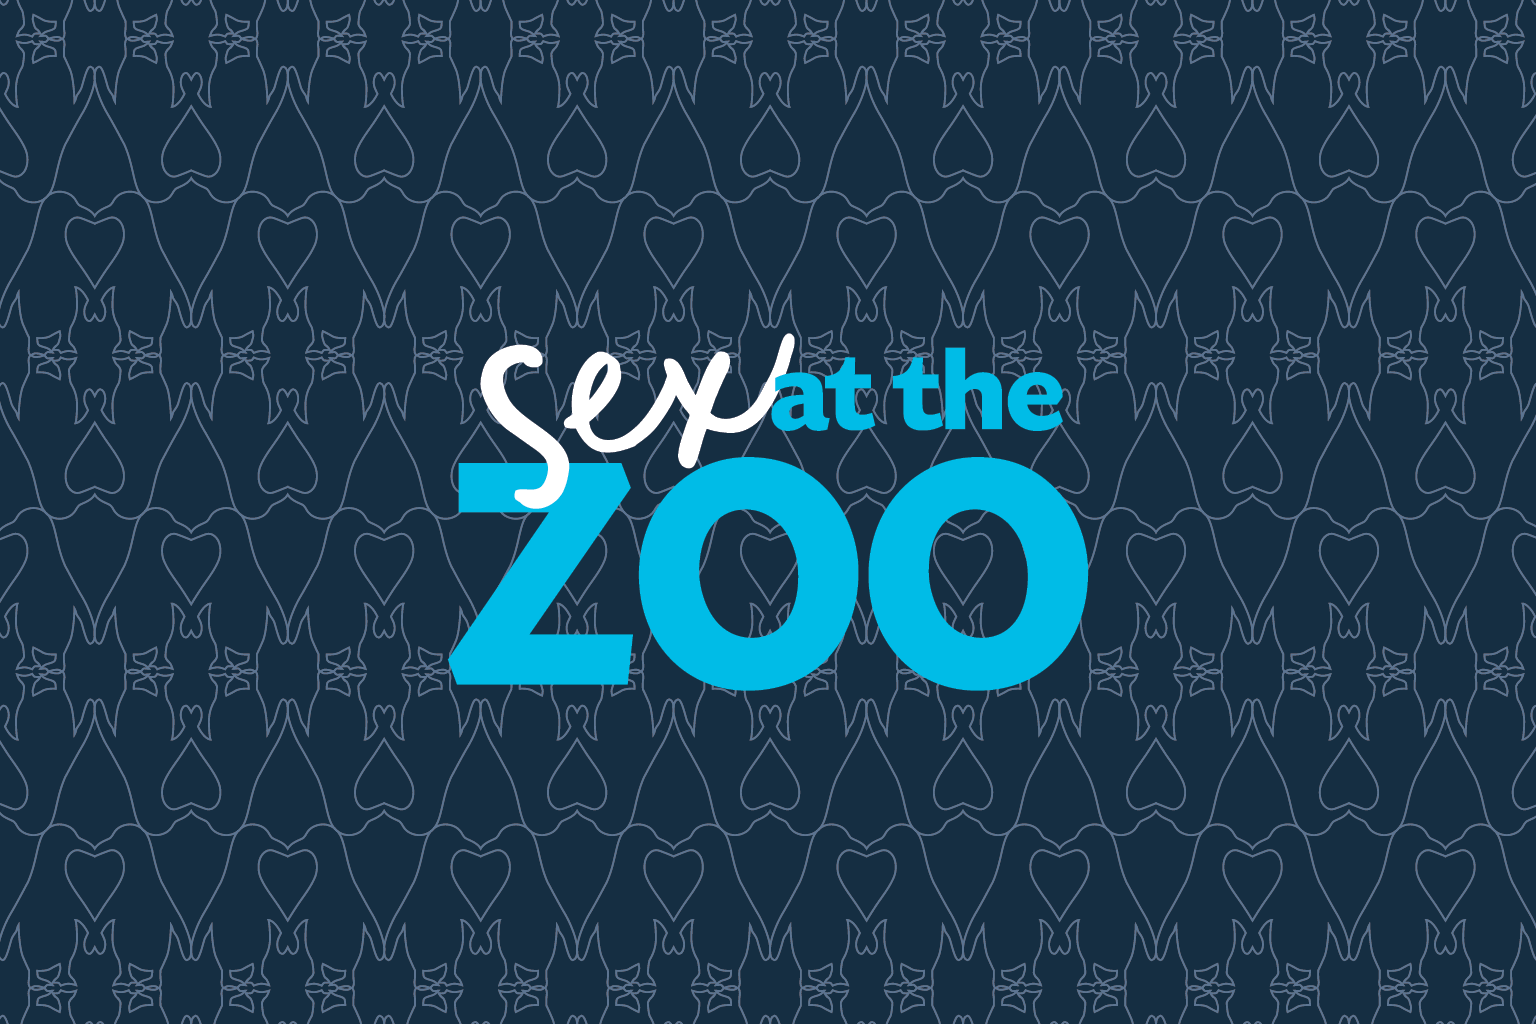 Sex at the Zoo 2019 | The Maryland Zoo